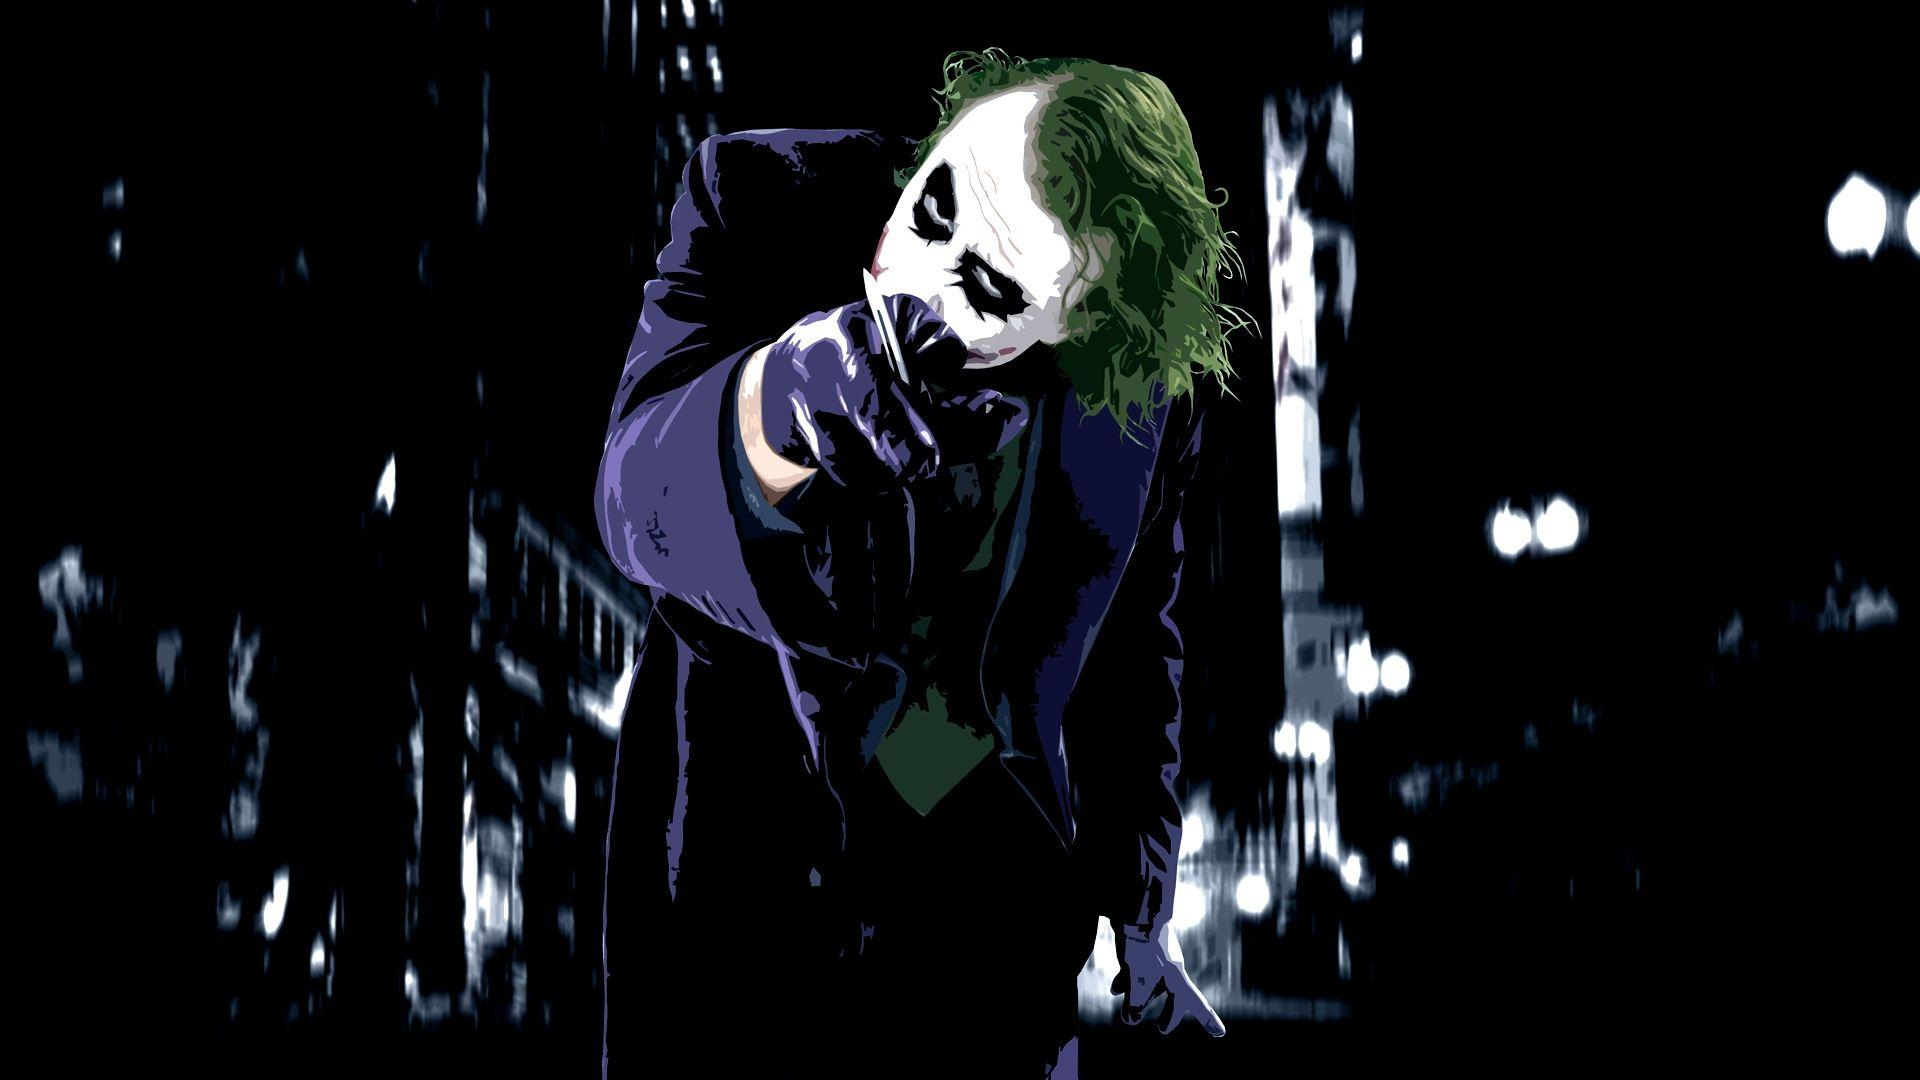 The Joker Hd Wallpapers 1080p Wallpaper Cave